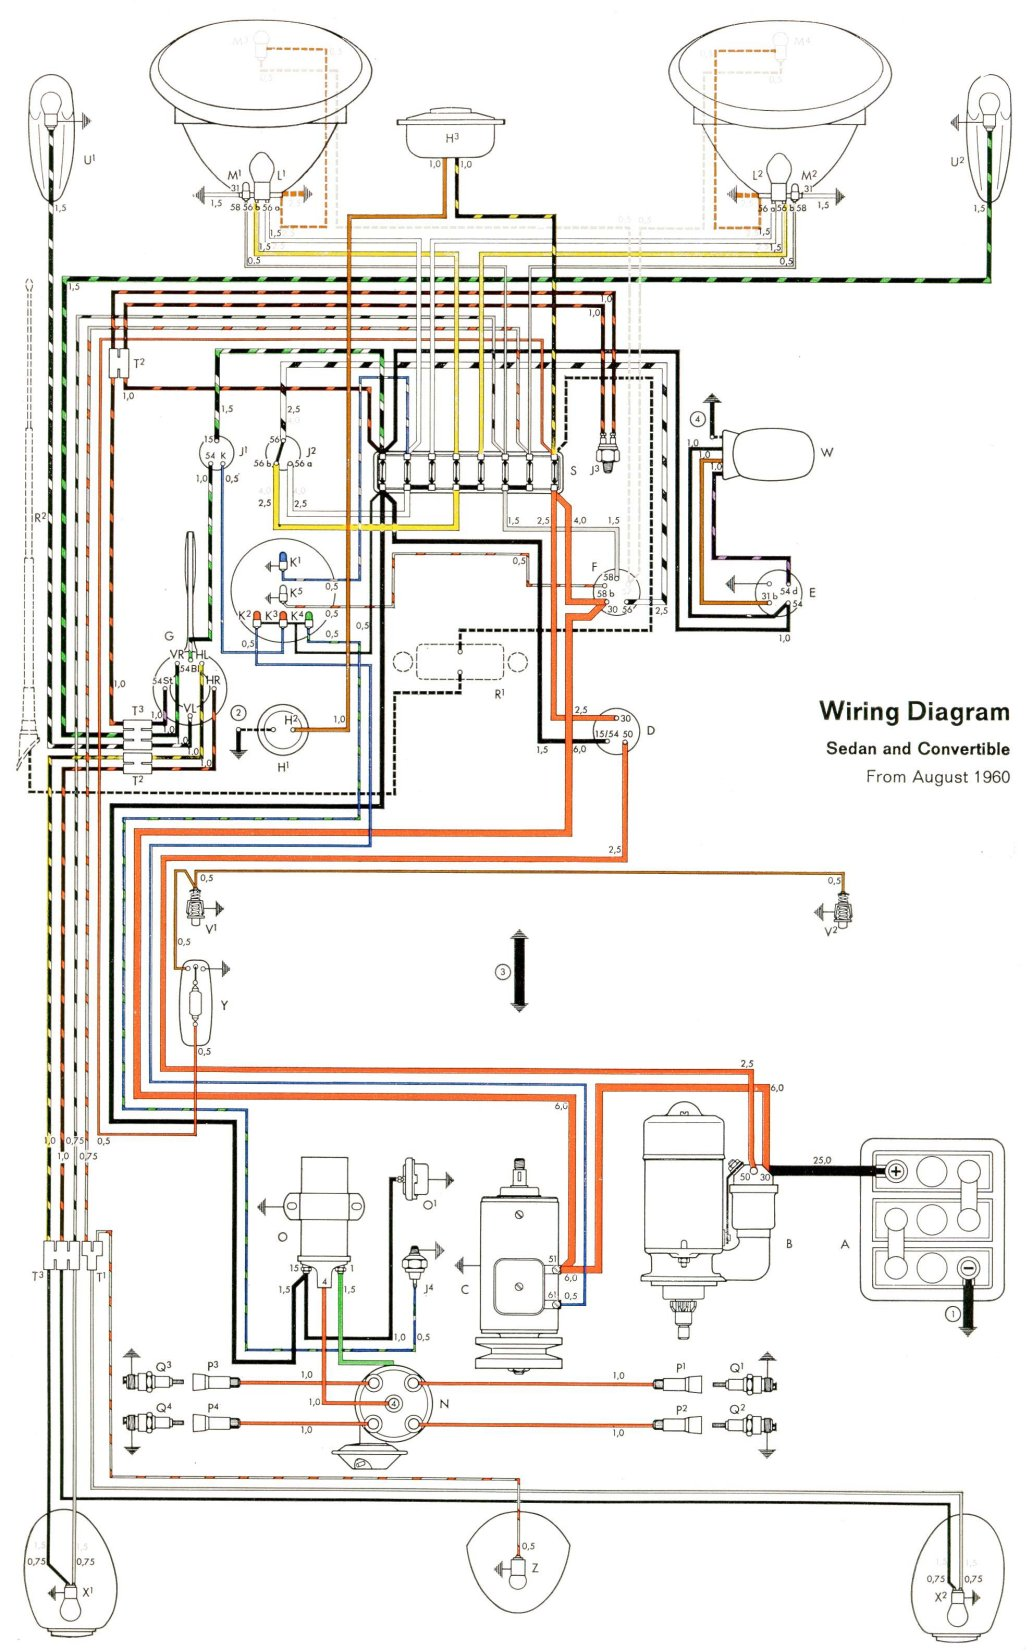 hight resolution of thesamba com type 1 wiring diagrams vw beetle panel vw beetle fuse diagram